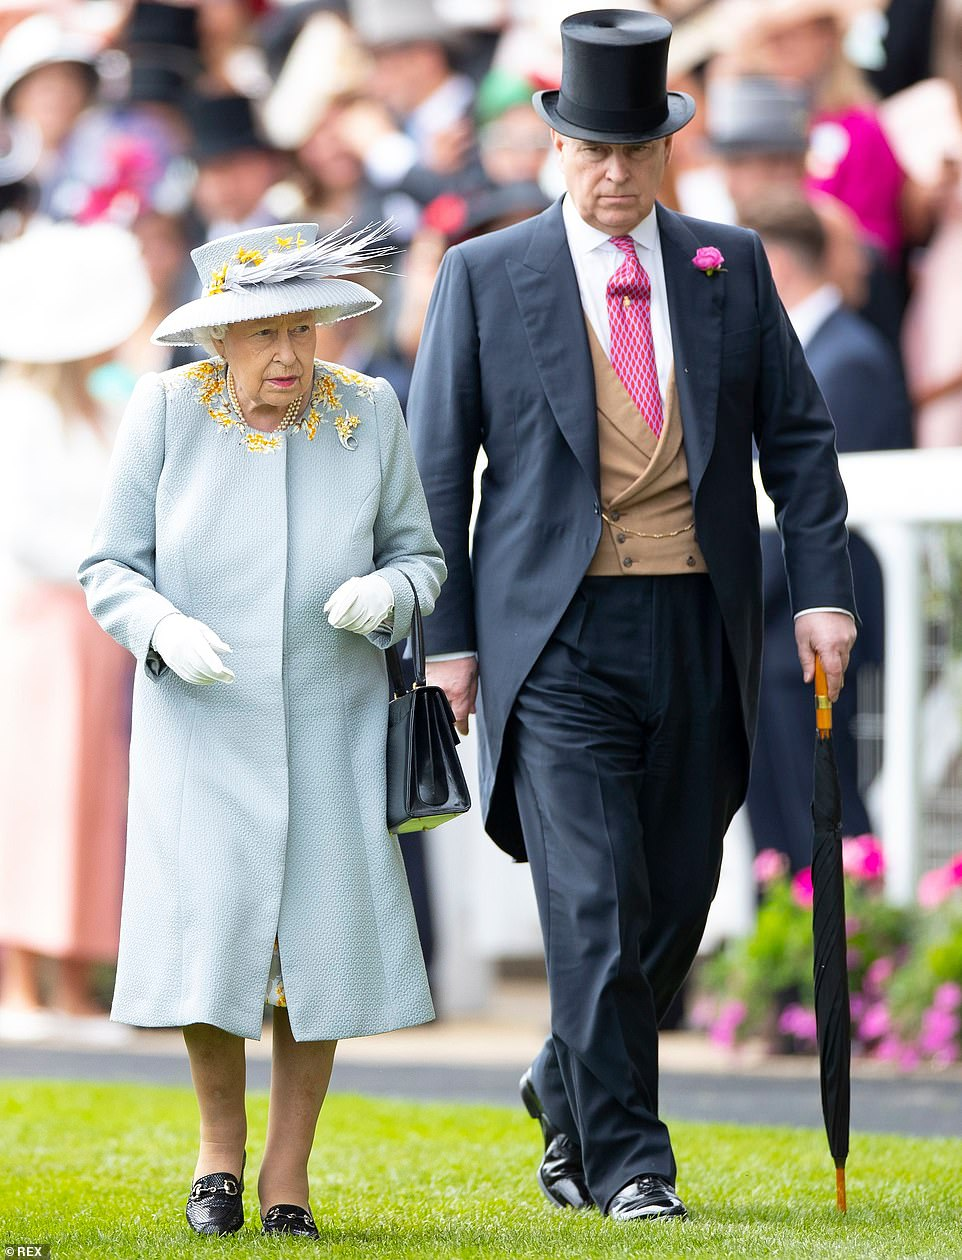 Pictured: Queen Elizabeth II and Prince Andrew attend Ladies Day at Royal Ascot in June